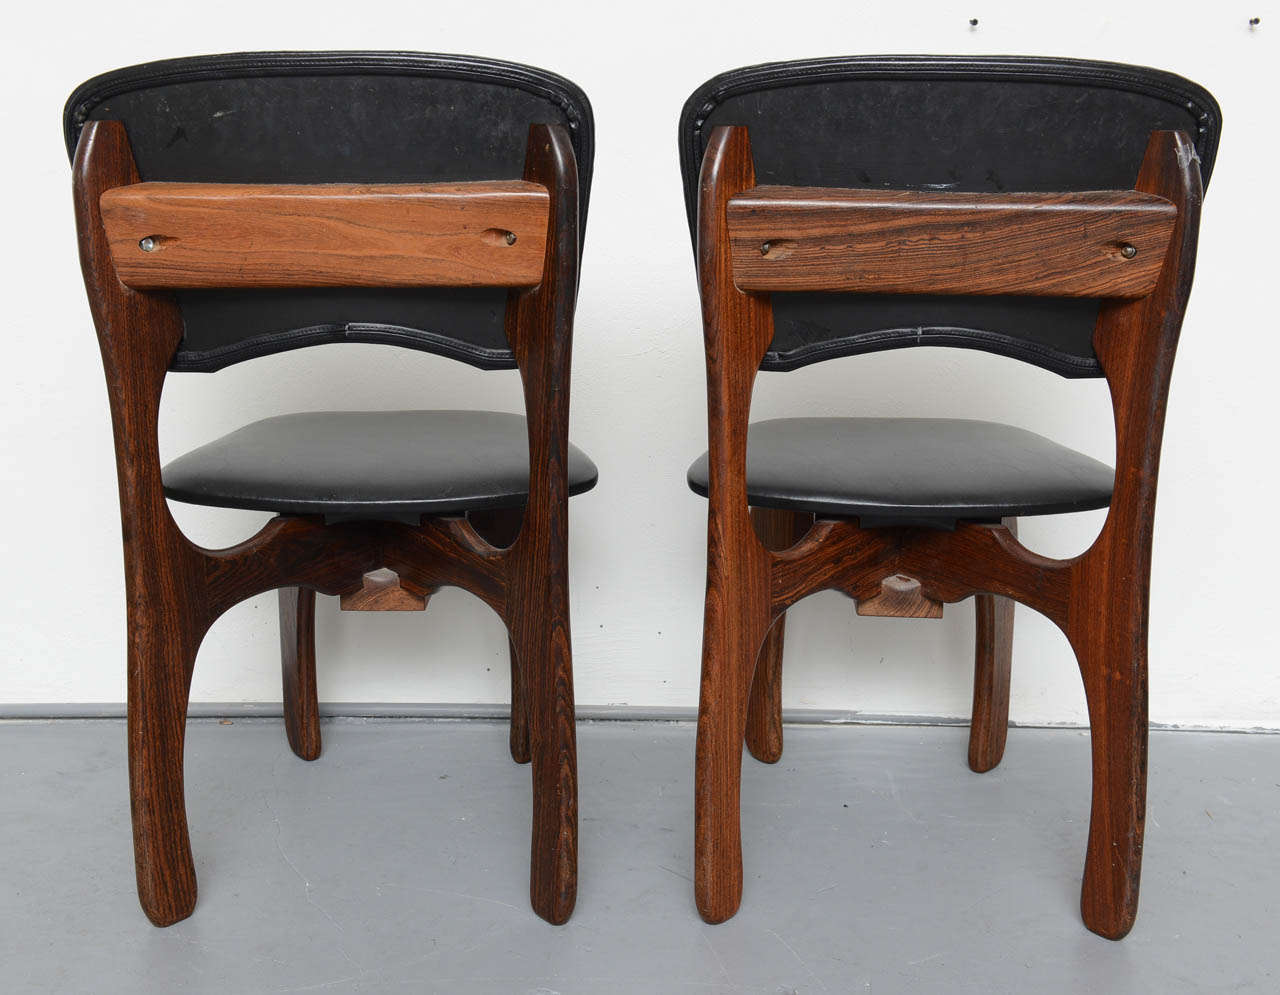 1970s Rosewood Chairs by Don Shoemaker, Mexico For Sale 1